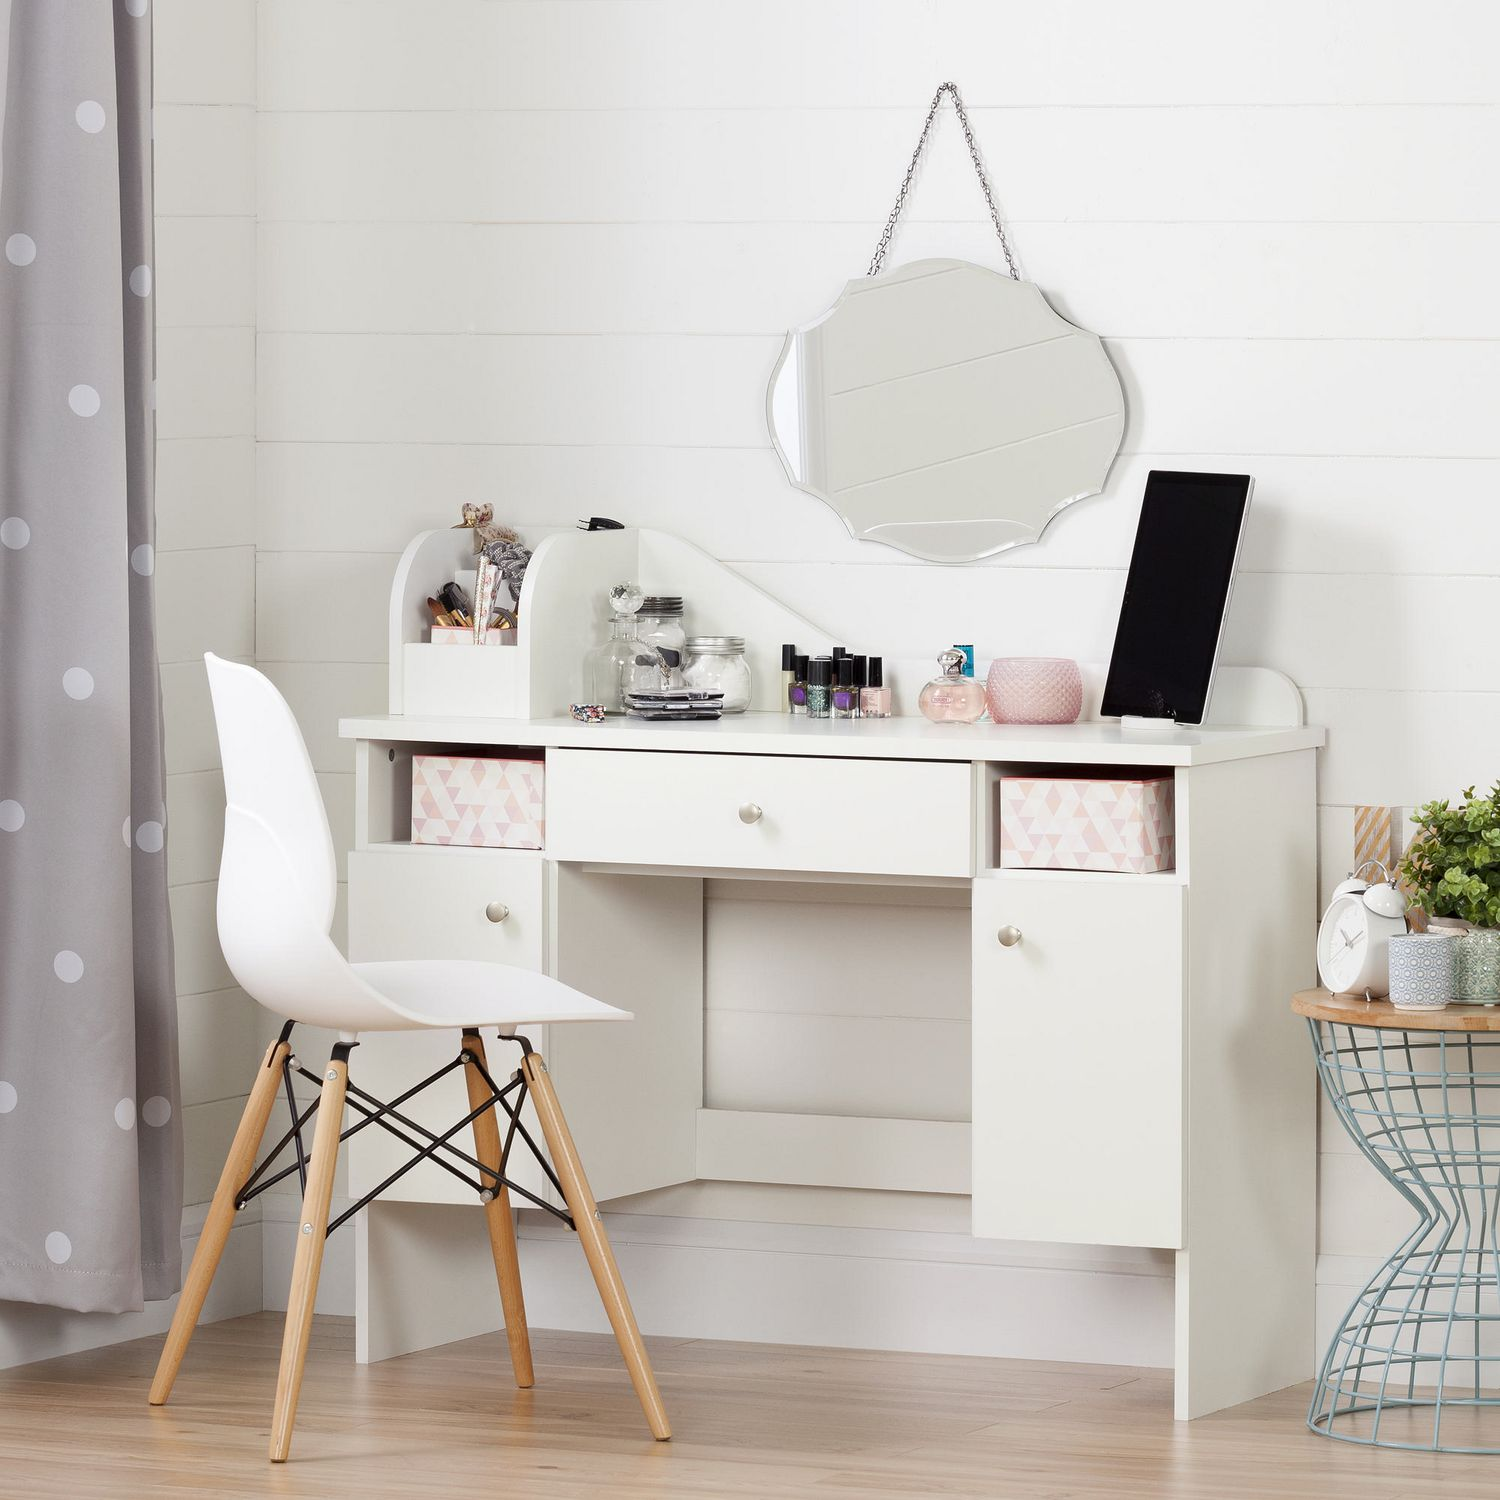 makeup beautiful desk up of vanity make jewelry bedroom table bench dresser sets attachment